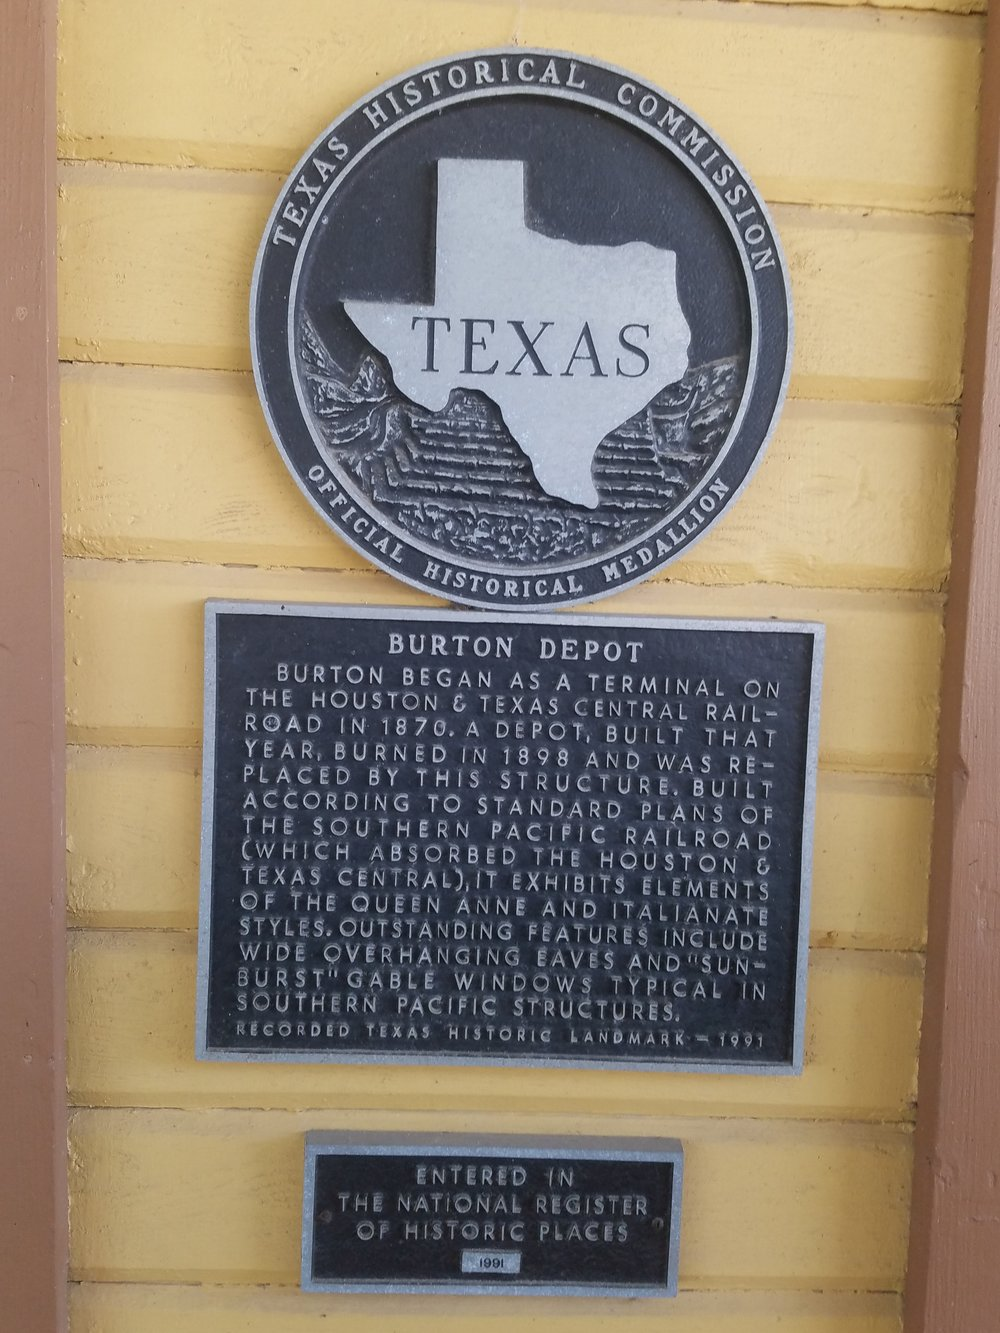 Texas Historical Commission marker placed on depot in 1991 and also entered in The National Register of Historic Places in 1991